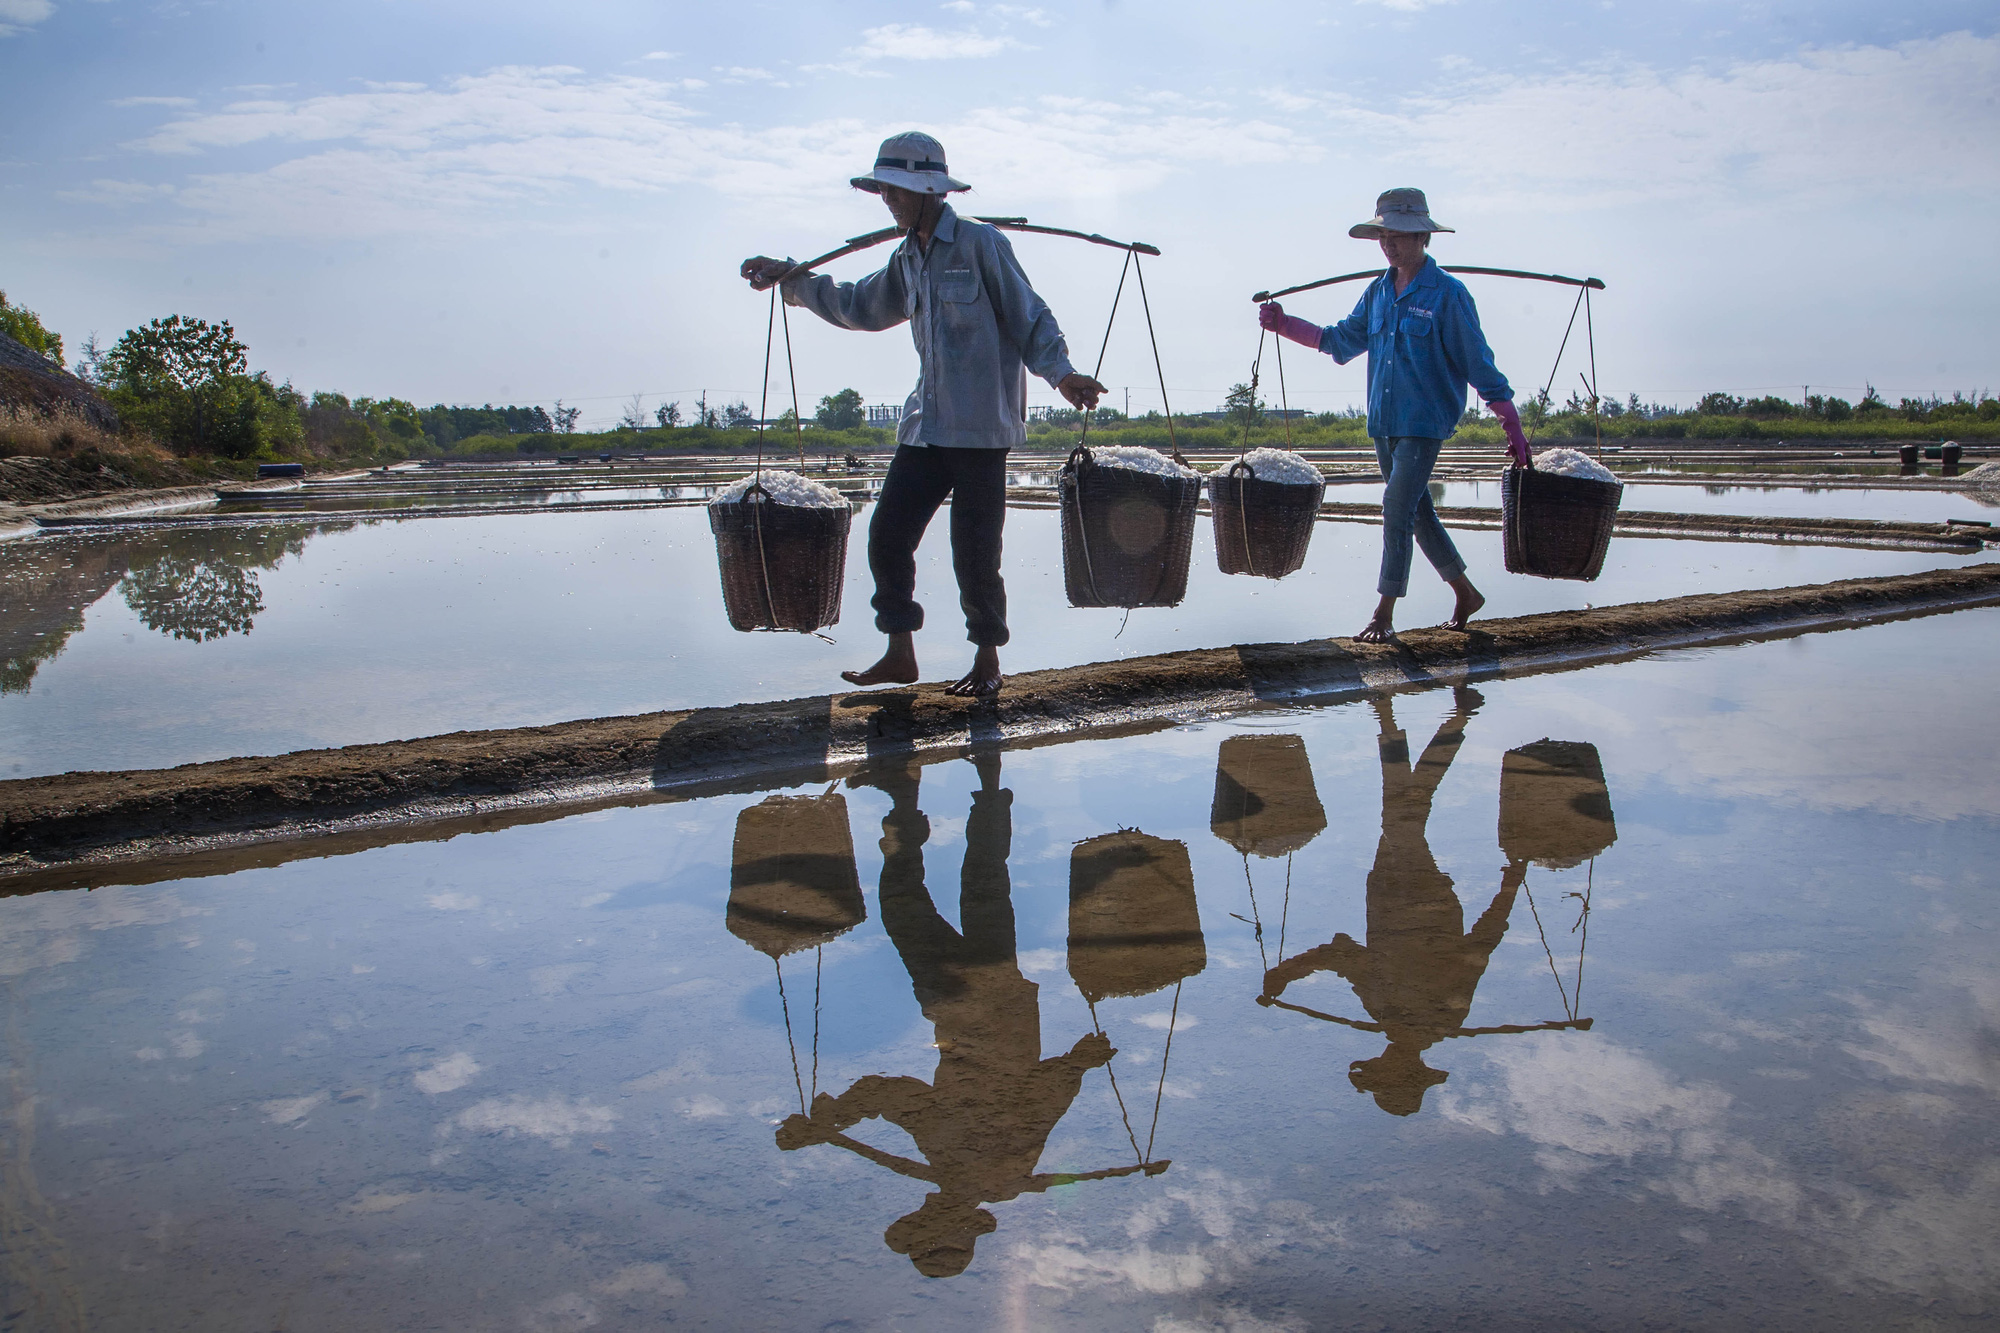 Two laborers carry salt at a salt field in Can Gio District, Ho Chi Minh City in this photo by Nguyen Manh Cuong, which won third prize at a local photo contest.